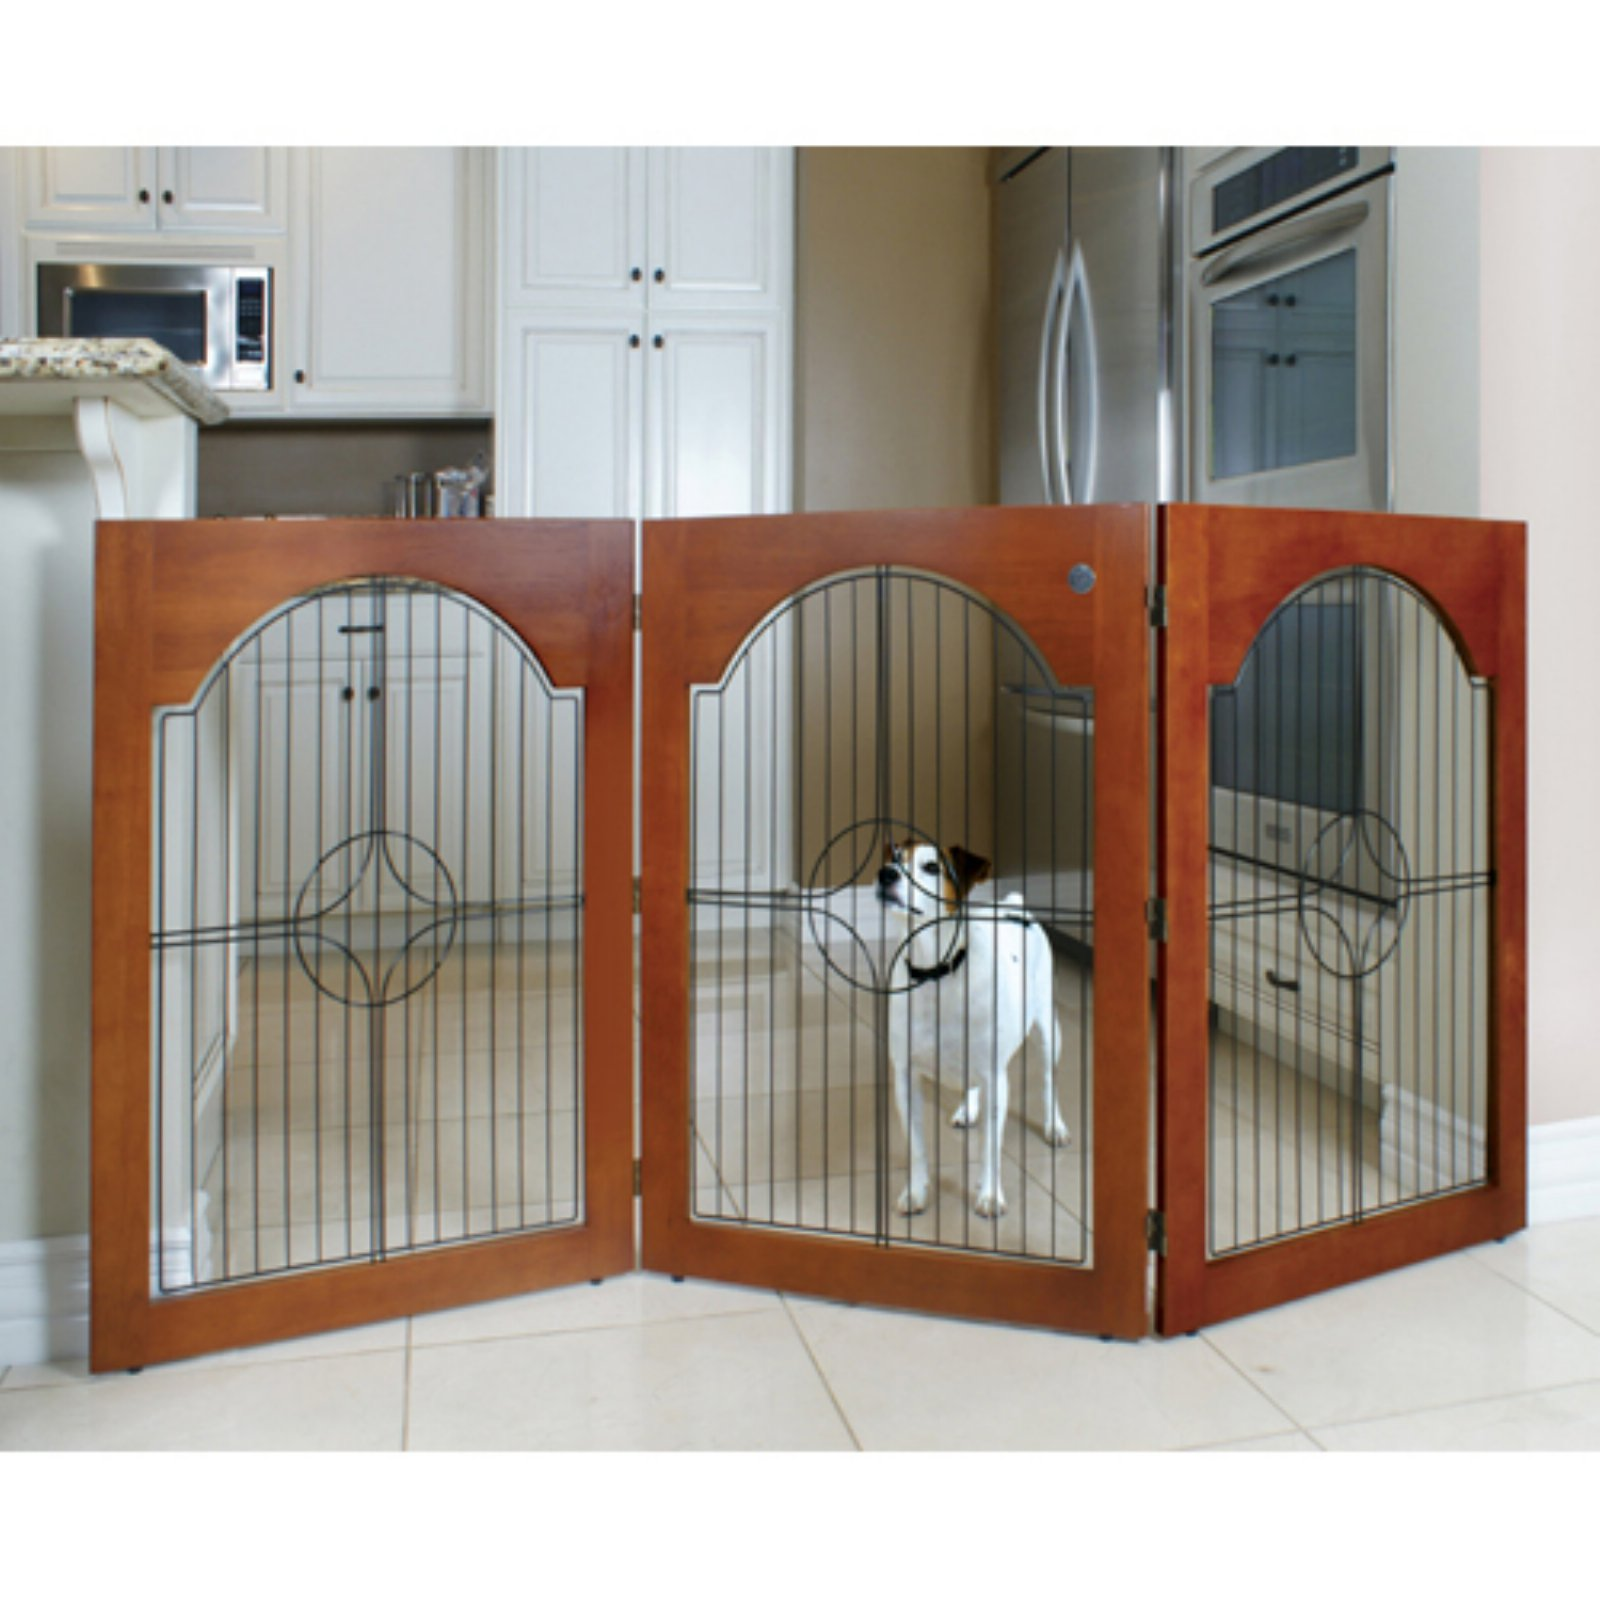 Majestic Pet Products Universal Free-Standing Pet Gate, Cherry Stained